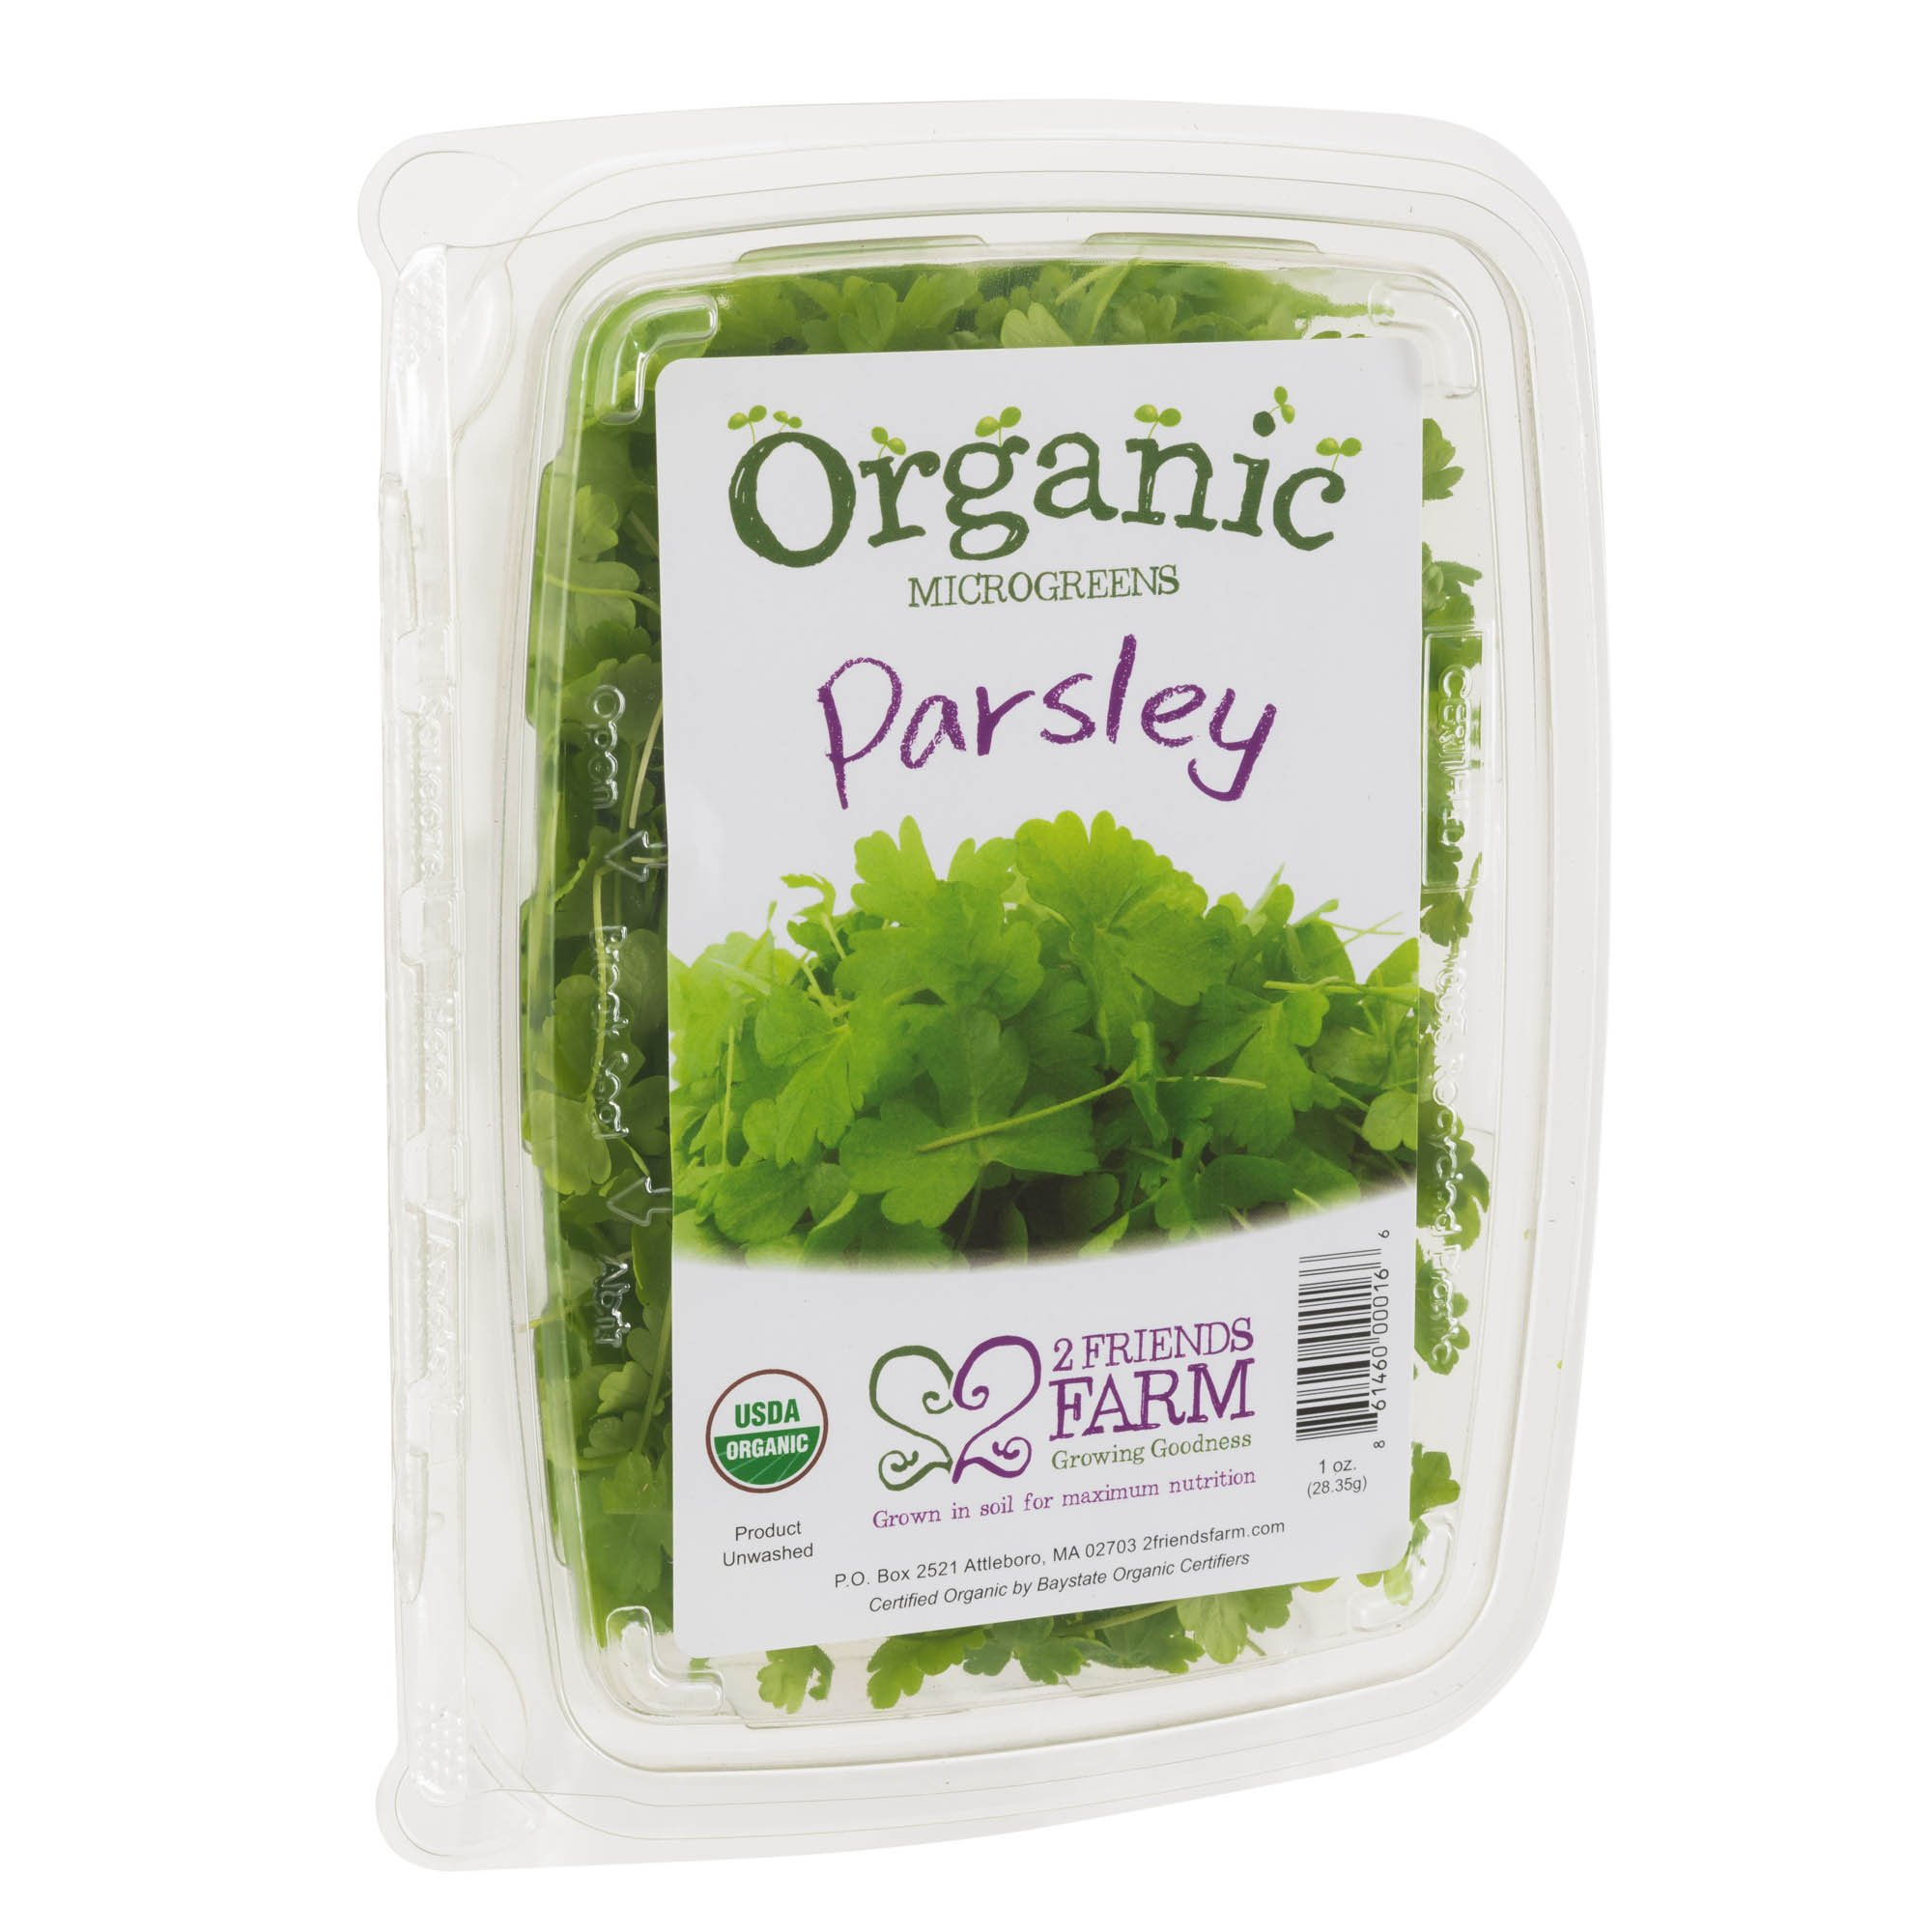 2 Friends Farm Local Northeast Organic Parsley Microgreens 1oz